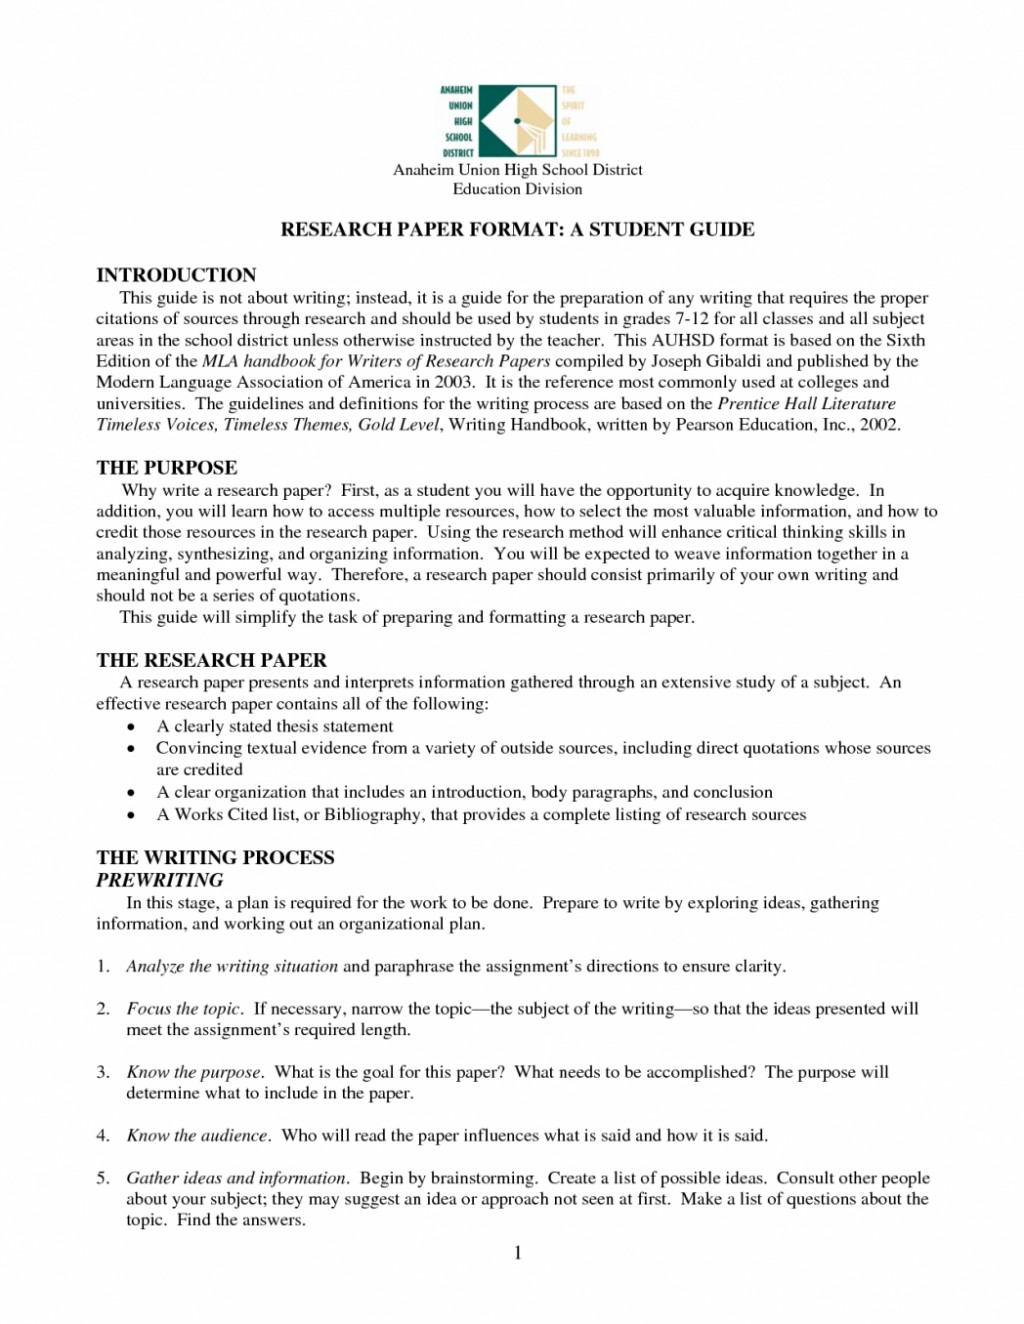 010 Research Paper Example Of On Domestic Violence Essays About Essay Topics Exceptional Outline For Proposal Large